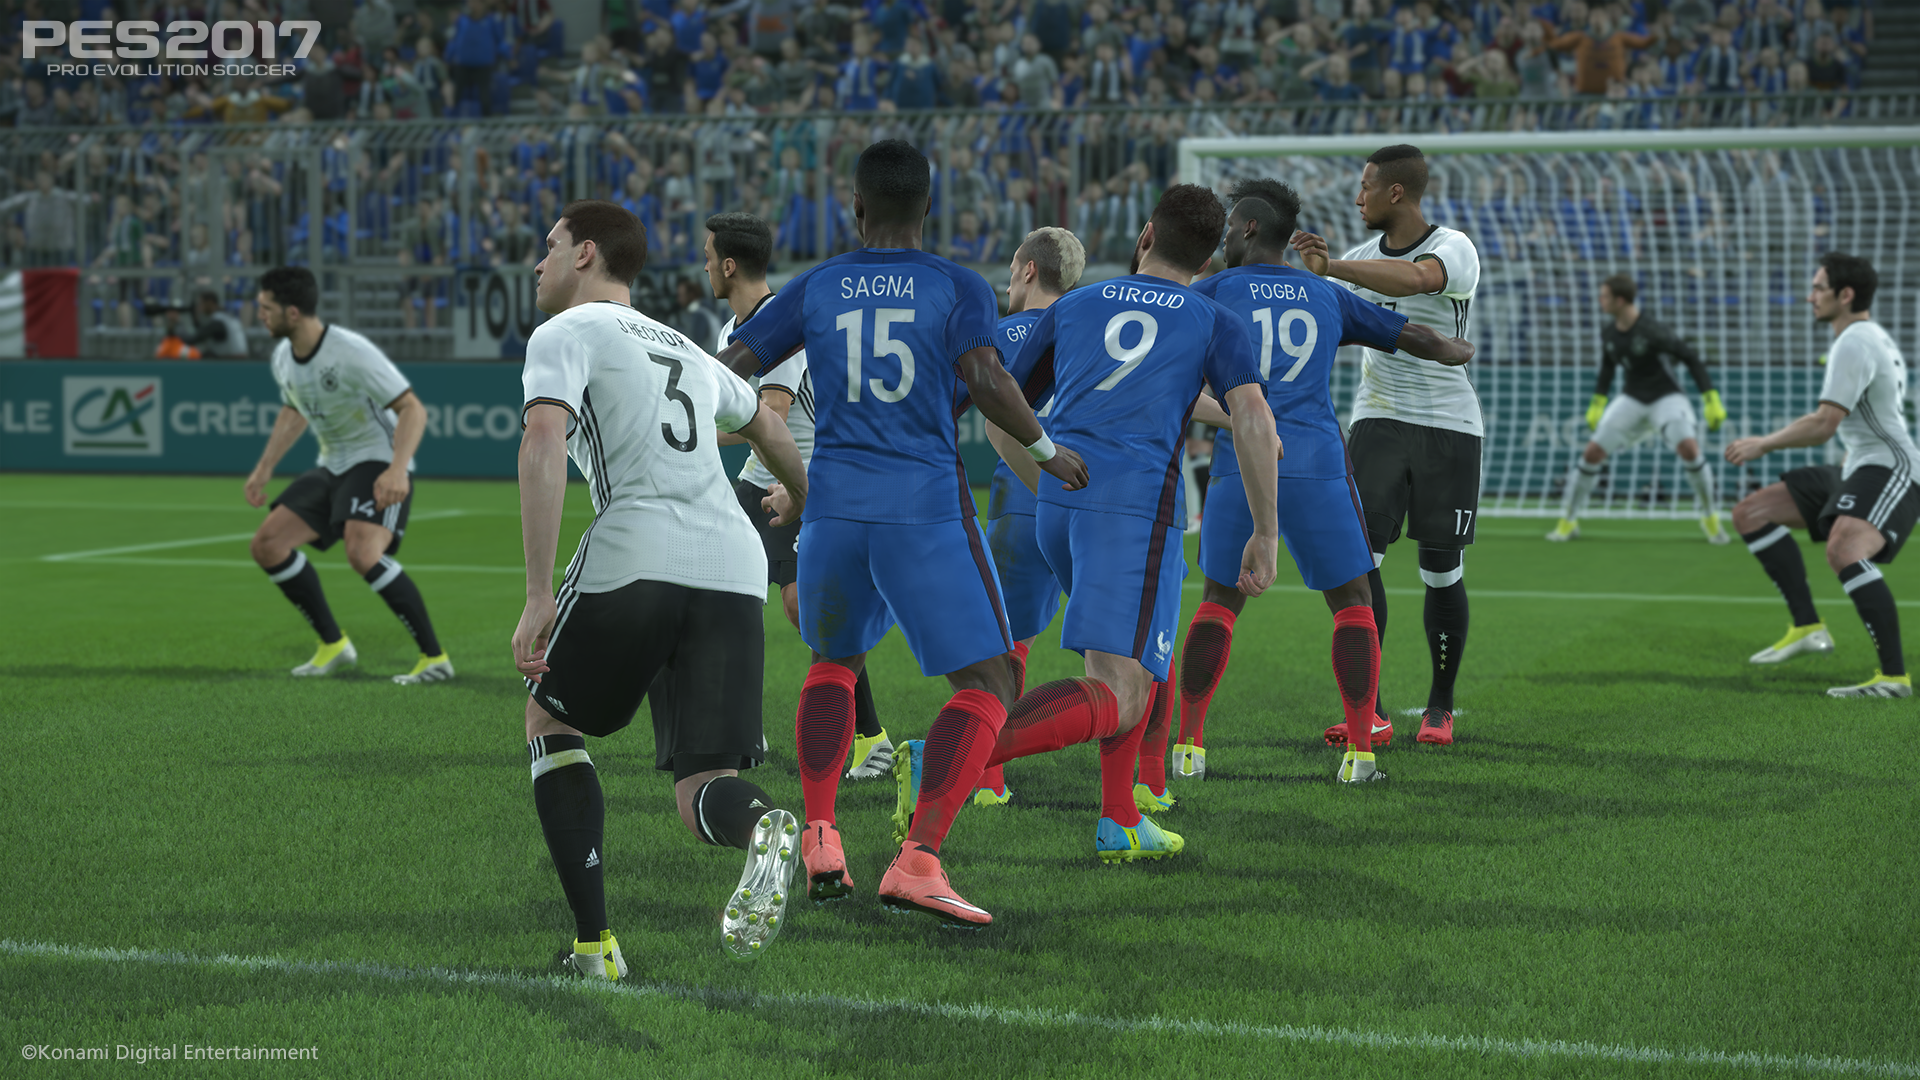 PES 2017: Soccer simulation, not soccer game | Ars Technica